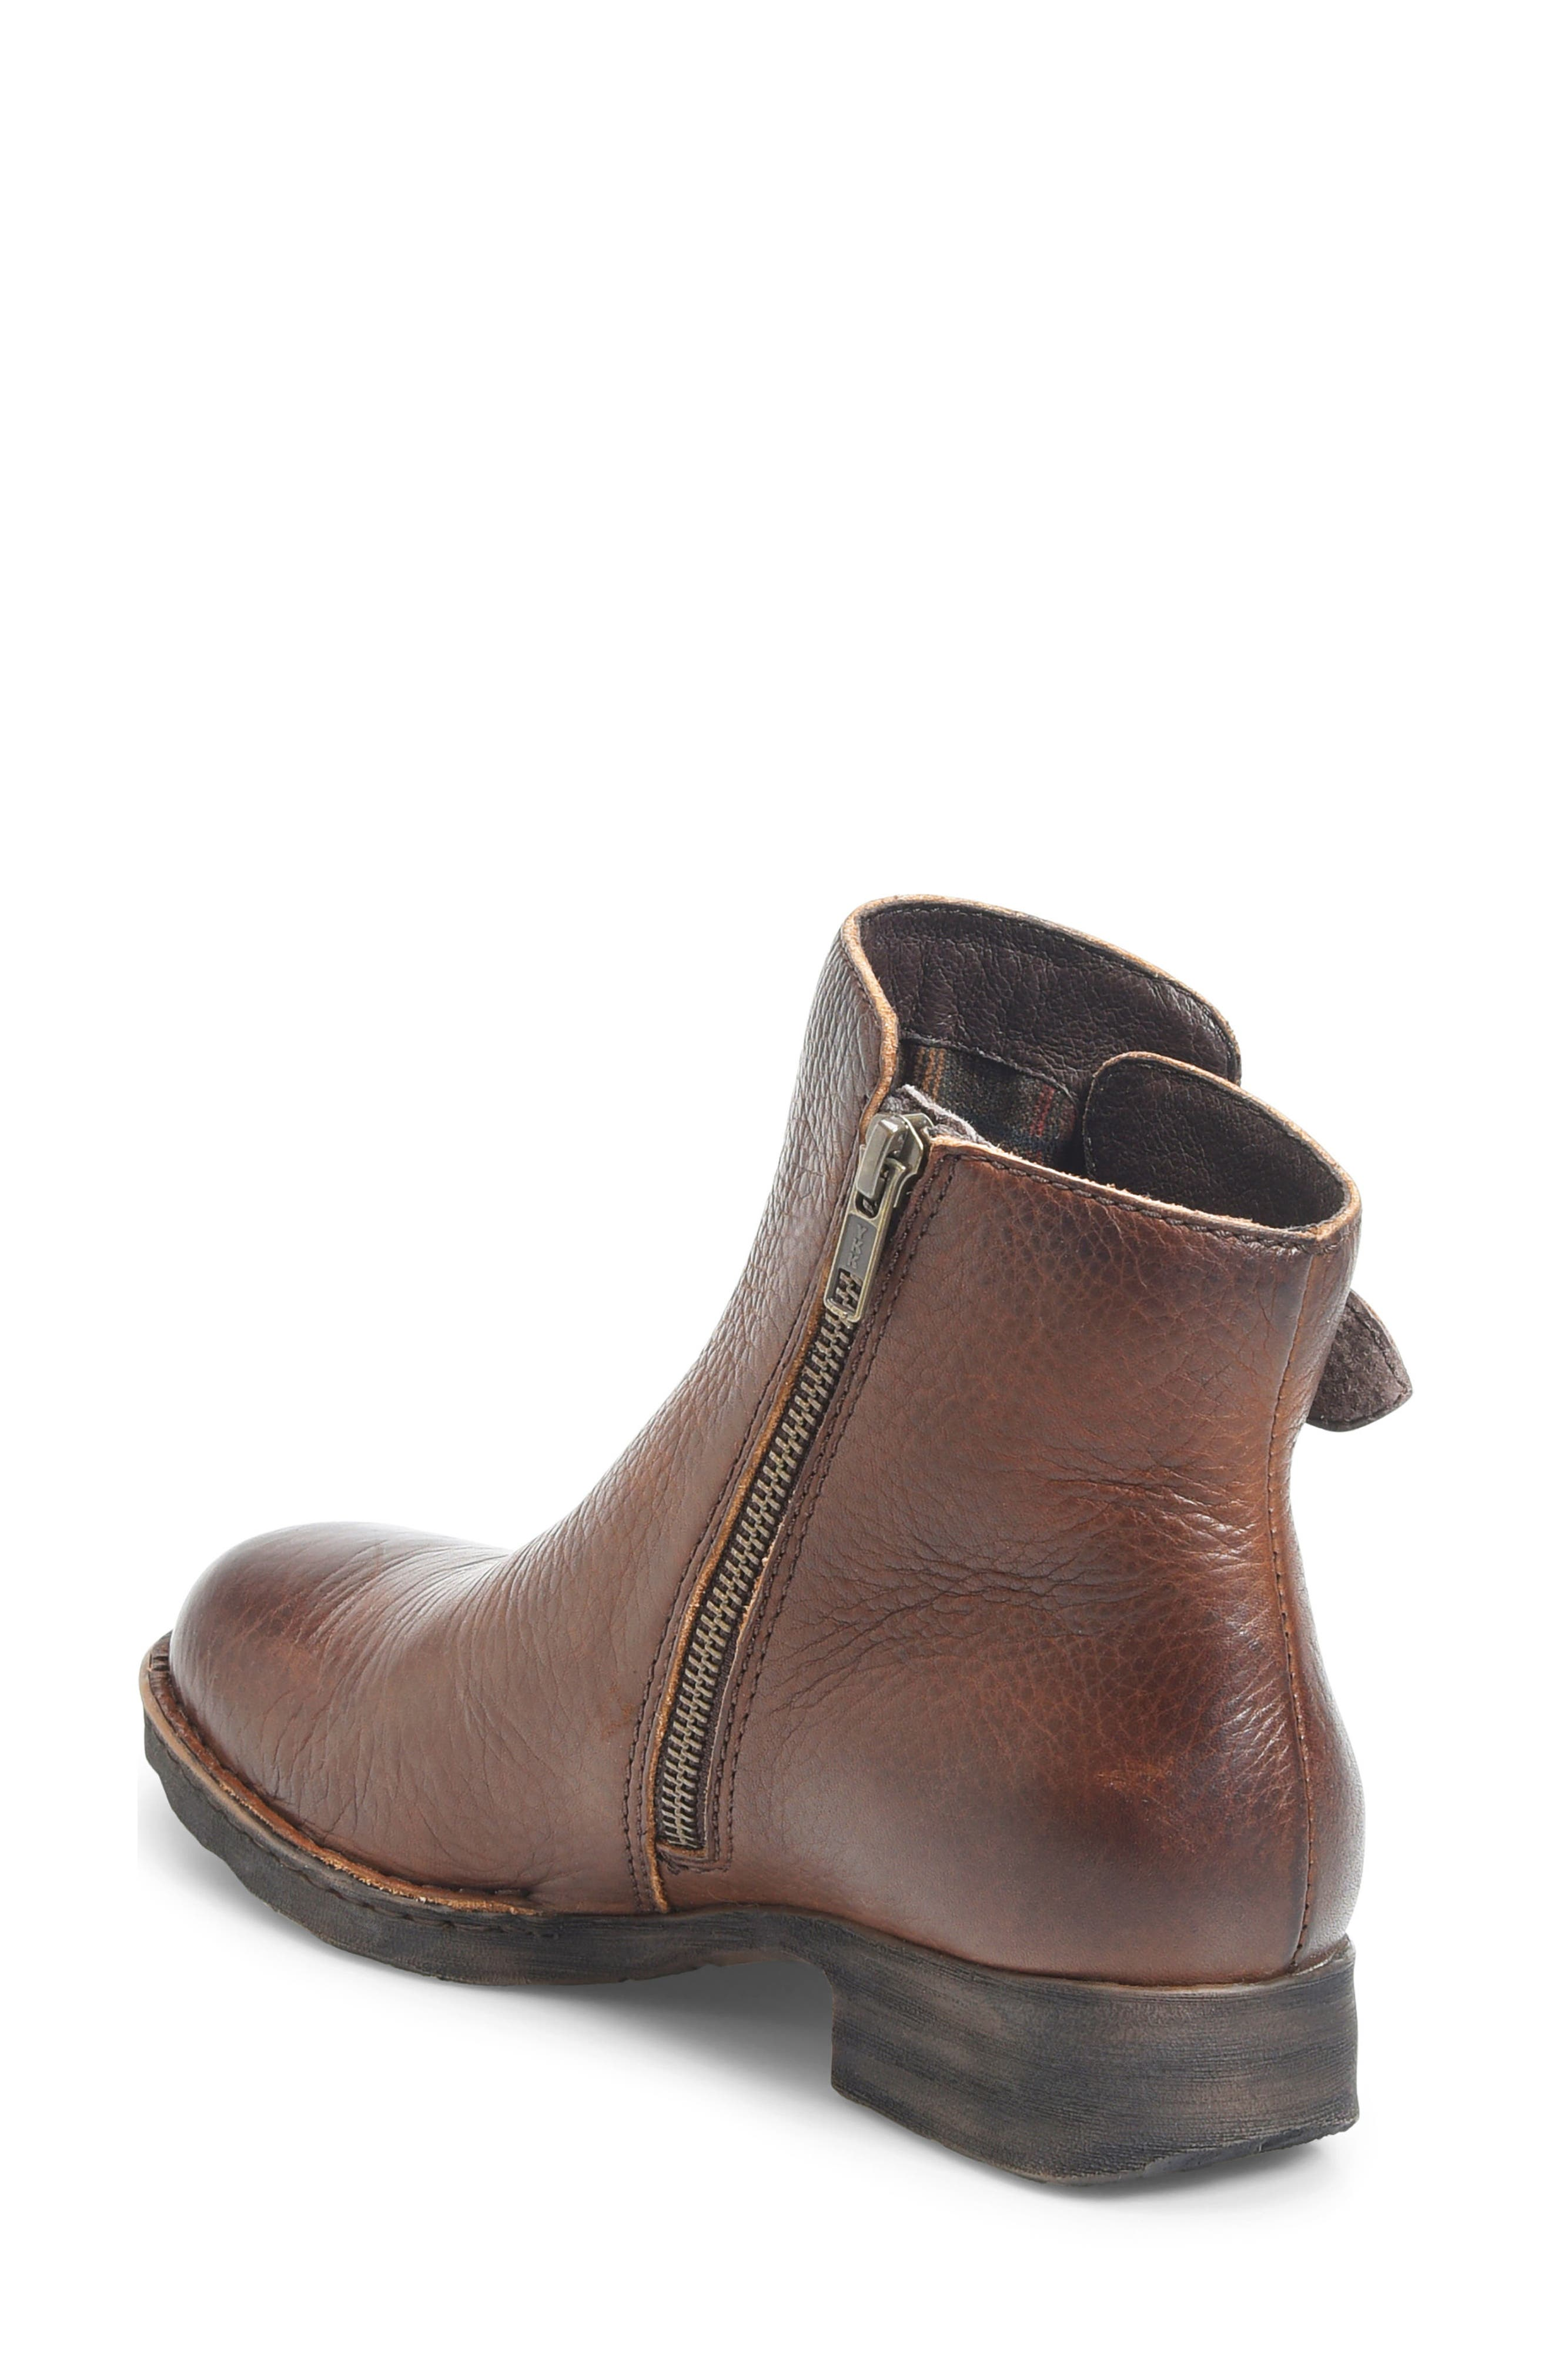 Carbine Bootie,                             Alternate thumbnail 2, color,                             Brown Leather